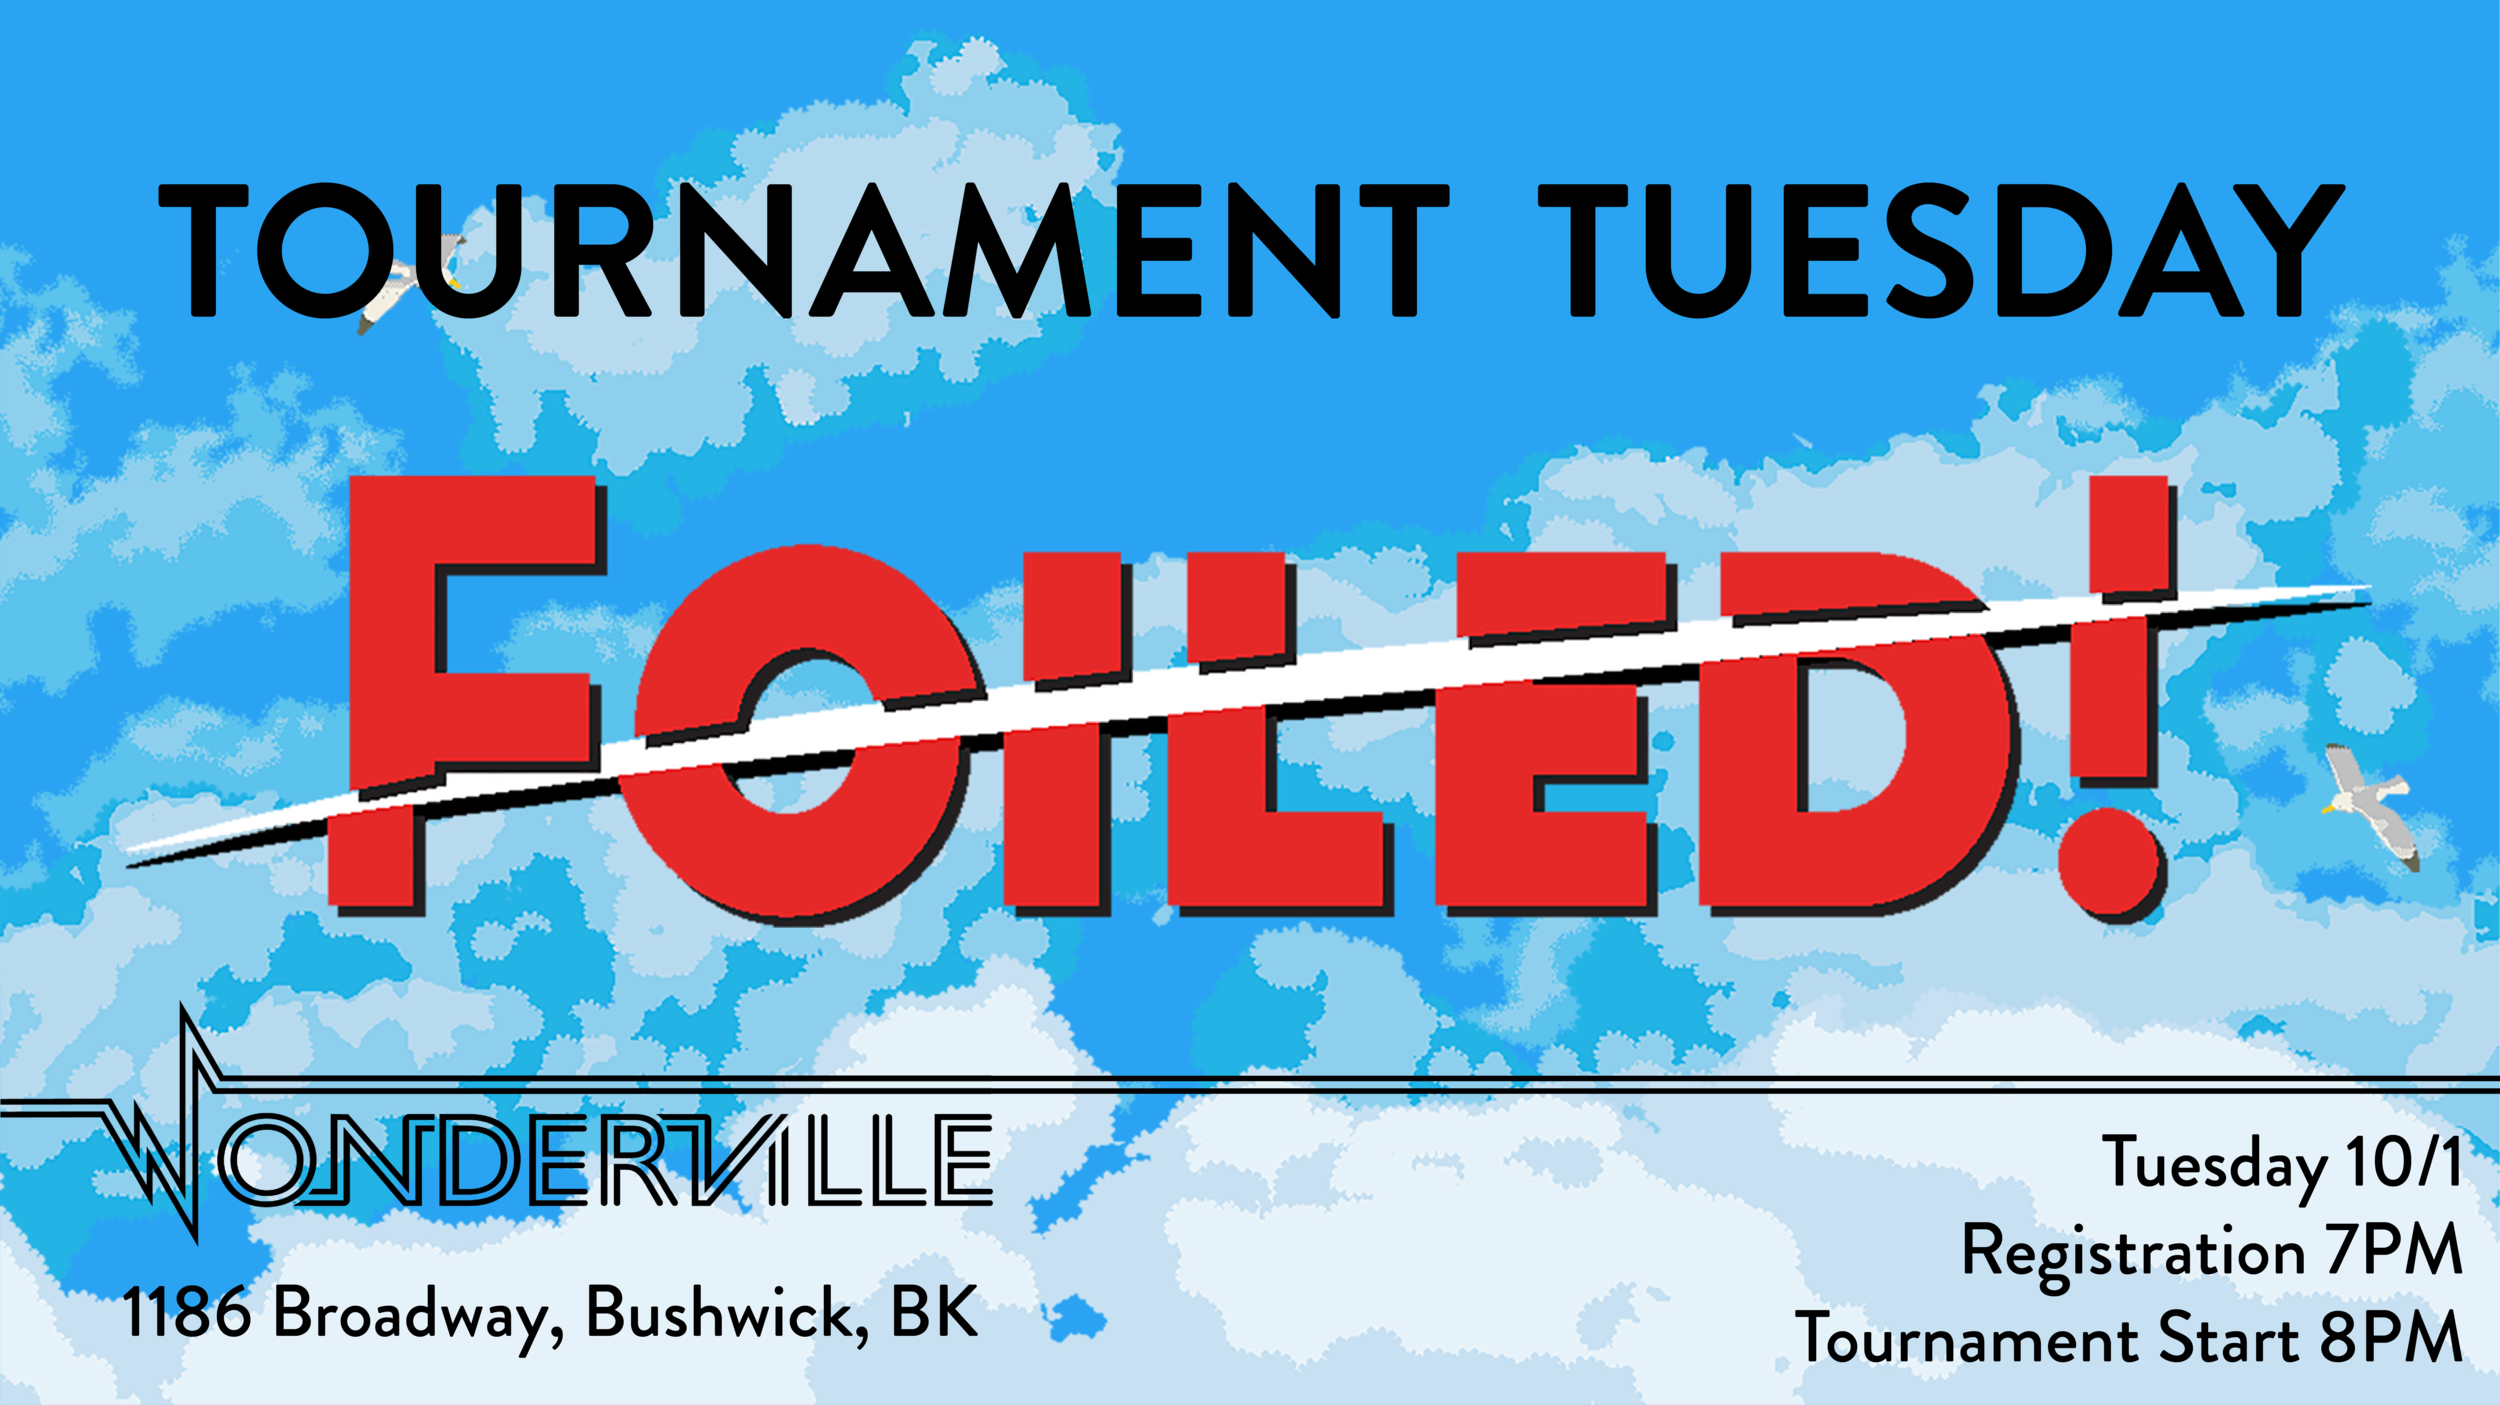 RSVP:  https://withfriends.co/event/2741277/tournament_tuesday_foiled